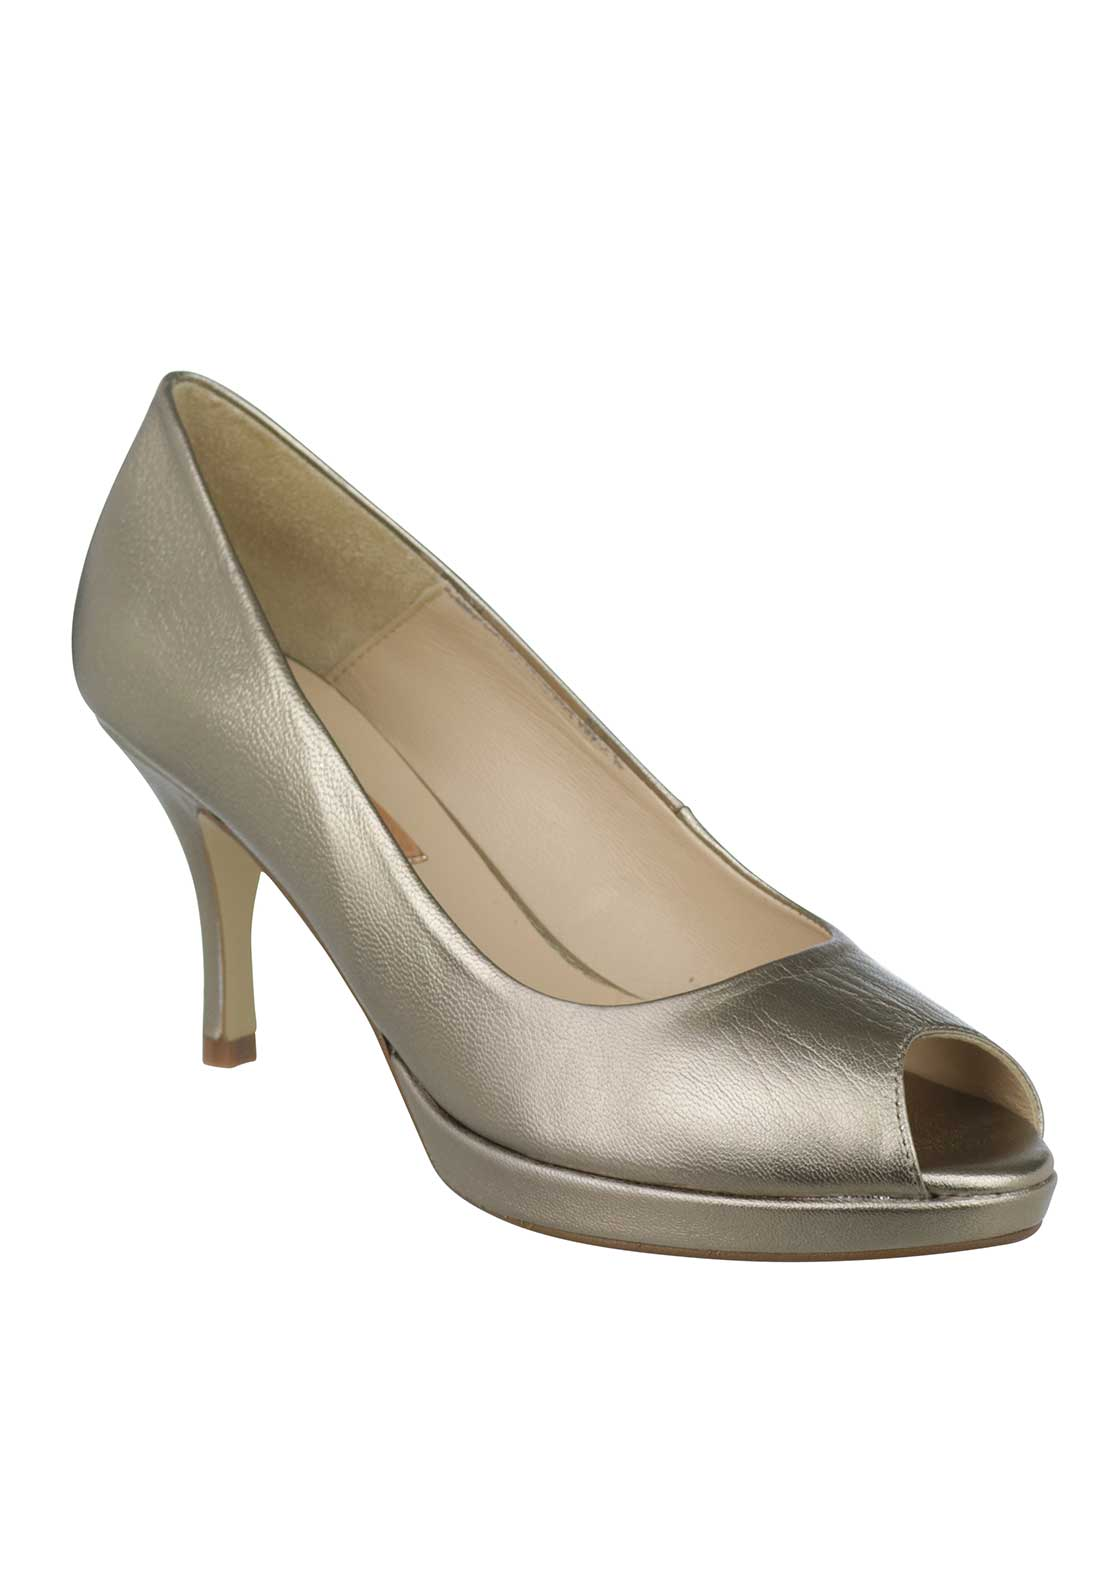 Marian Leather Peep Toe Heeled Shoes, Gold